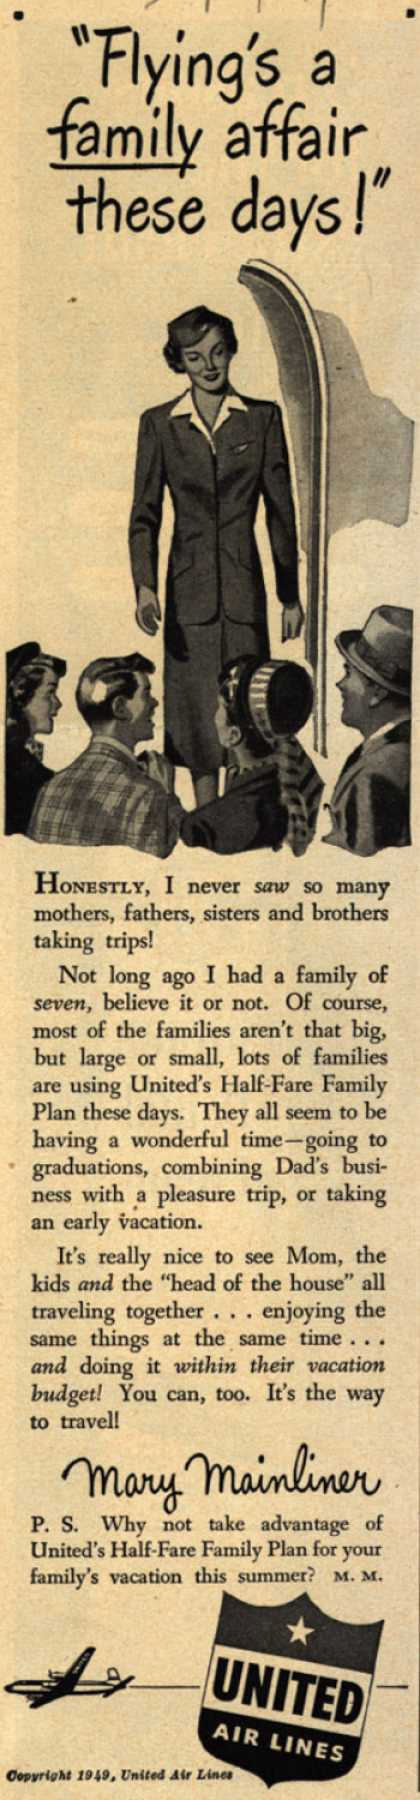 "United Air Line's Half-Fare Family Plan – ""Flying's a family affair these days!"" (1949)"